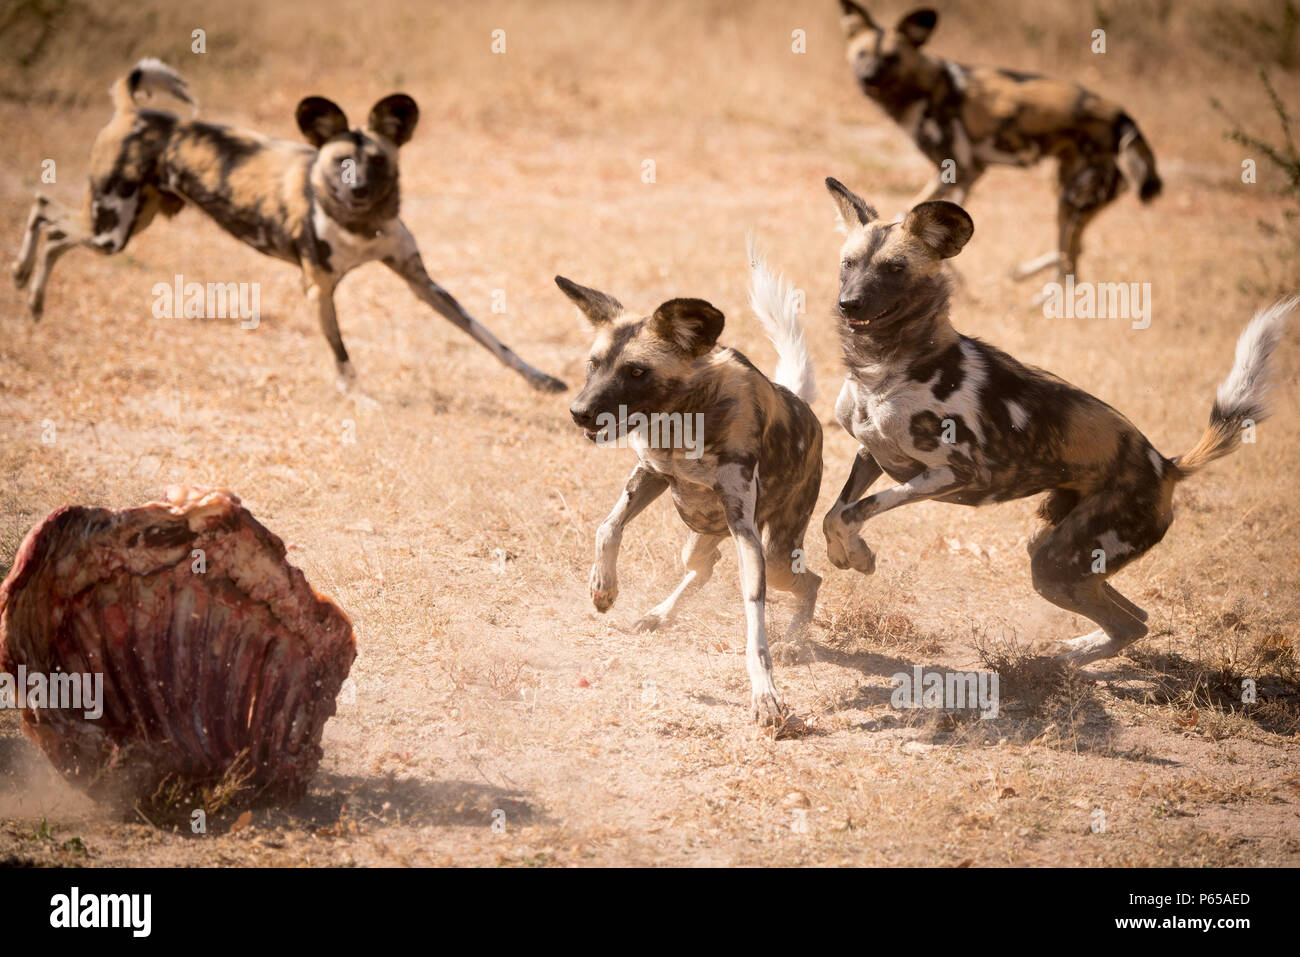 Pack of African Painted Wild Dogs feeding - Stock Image